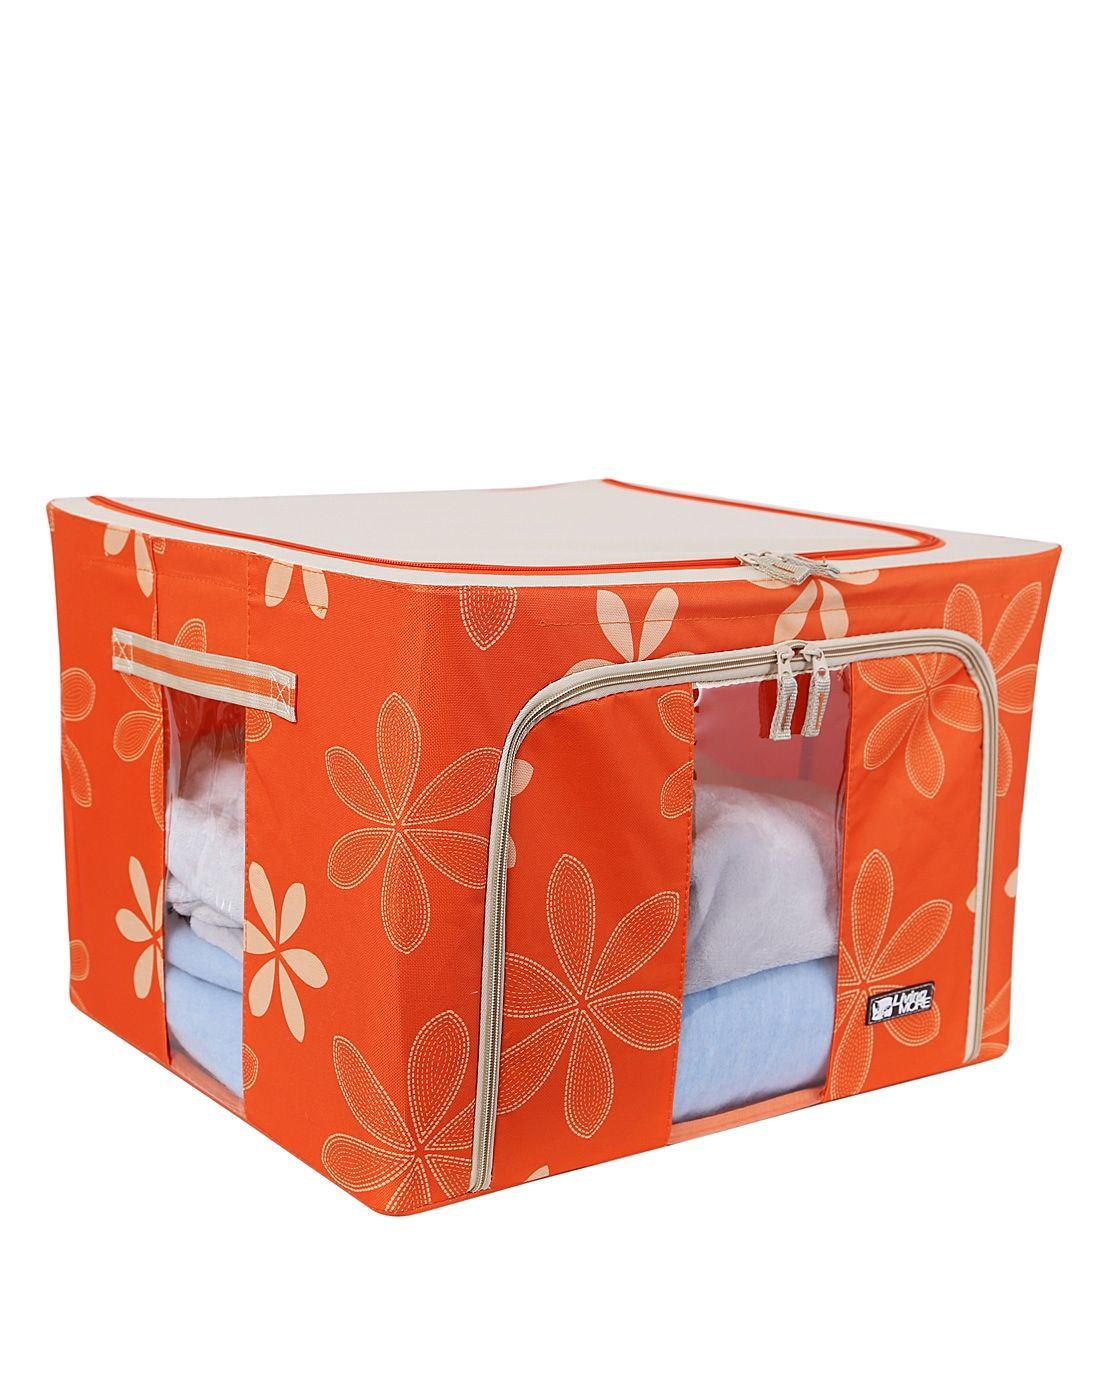 Hot Item Fabric Bedclothes Origanizer Bag For Quilt And Blanket Storage